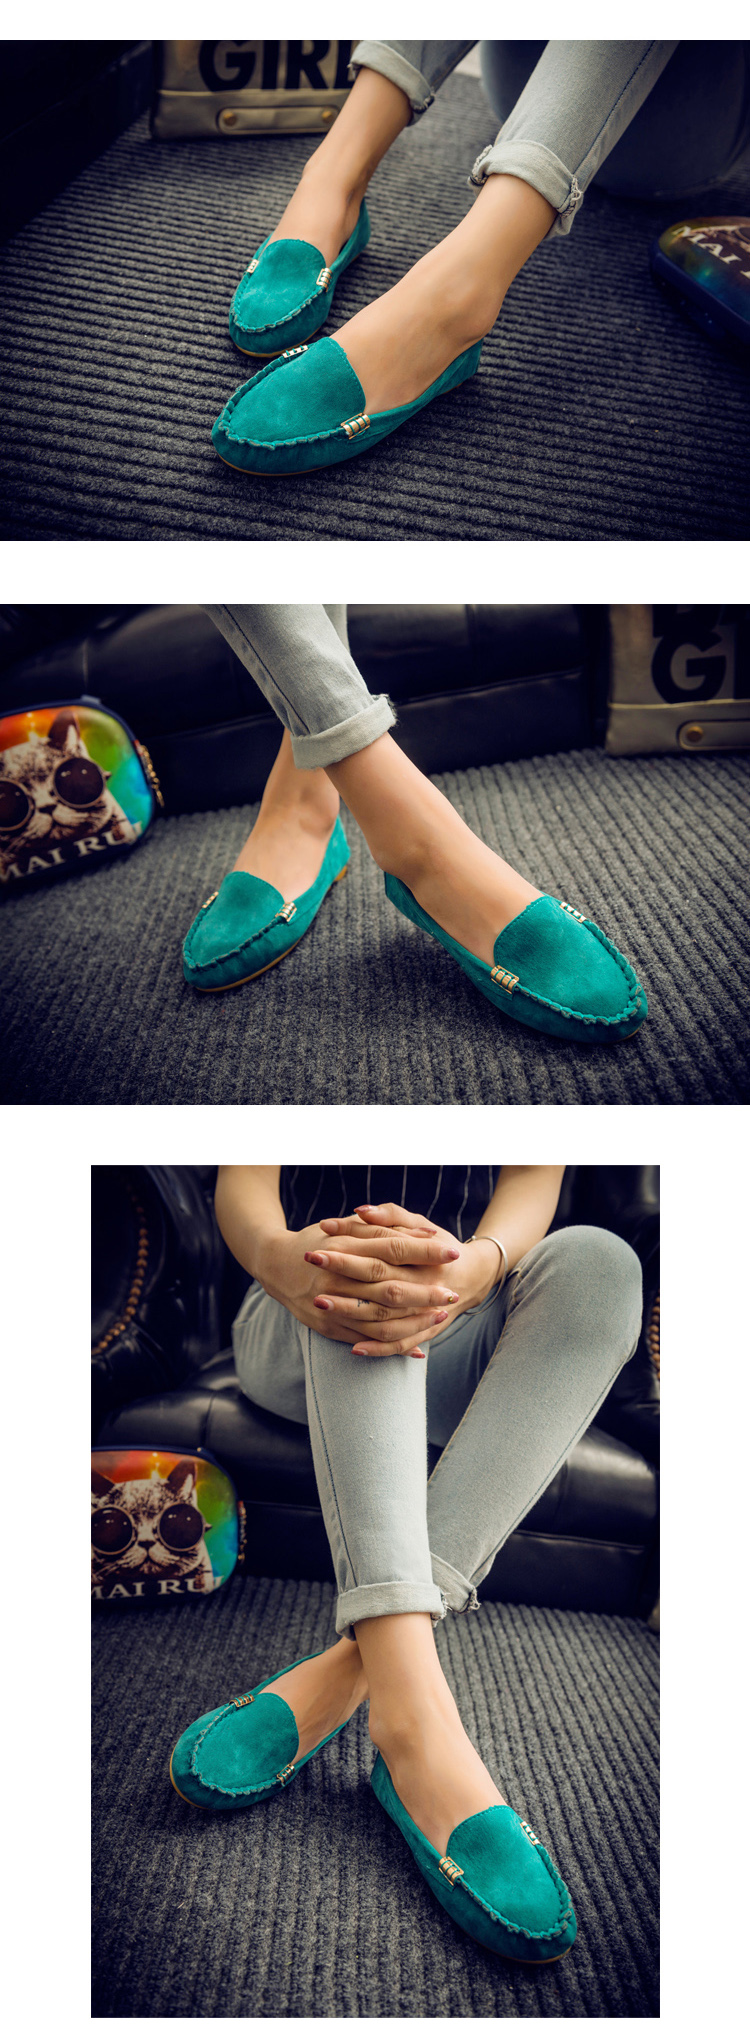 HTB19q5VfYrpK1RjSZTEq6AWAVXa6 Plus Size 35 43 Women Flats shoes 2019 Loafers Candy Color Slip on Flat Shoes Ballet Flats Comfortable Ladies shoe zapatos mujer